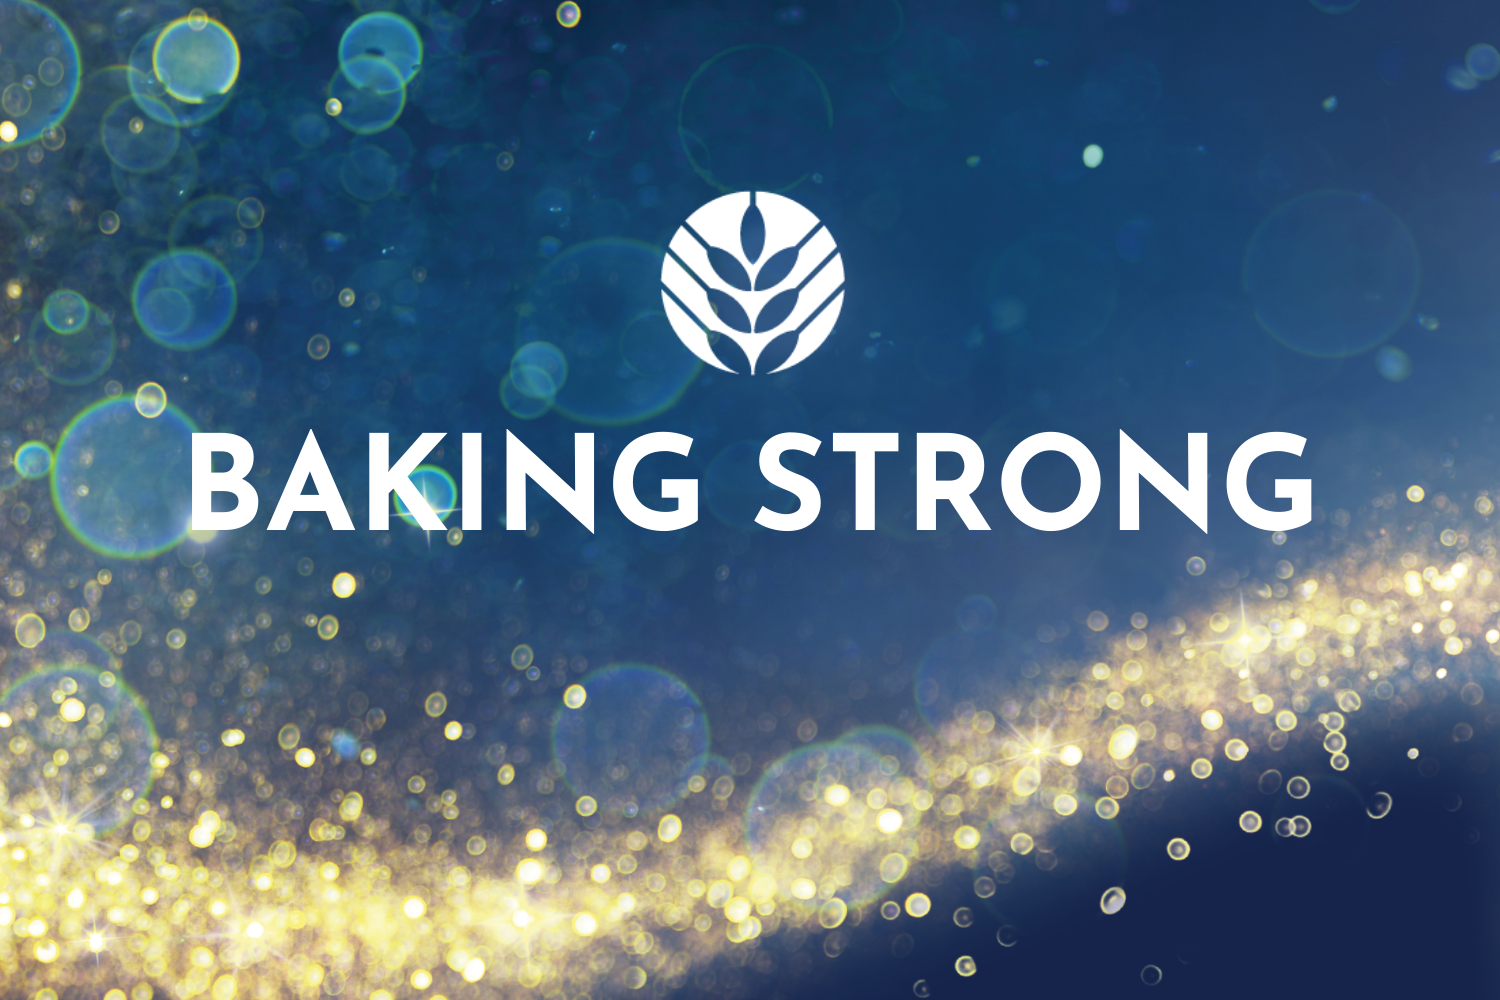 Baking Strong American Bakers Association